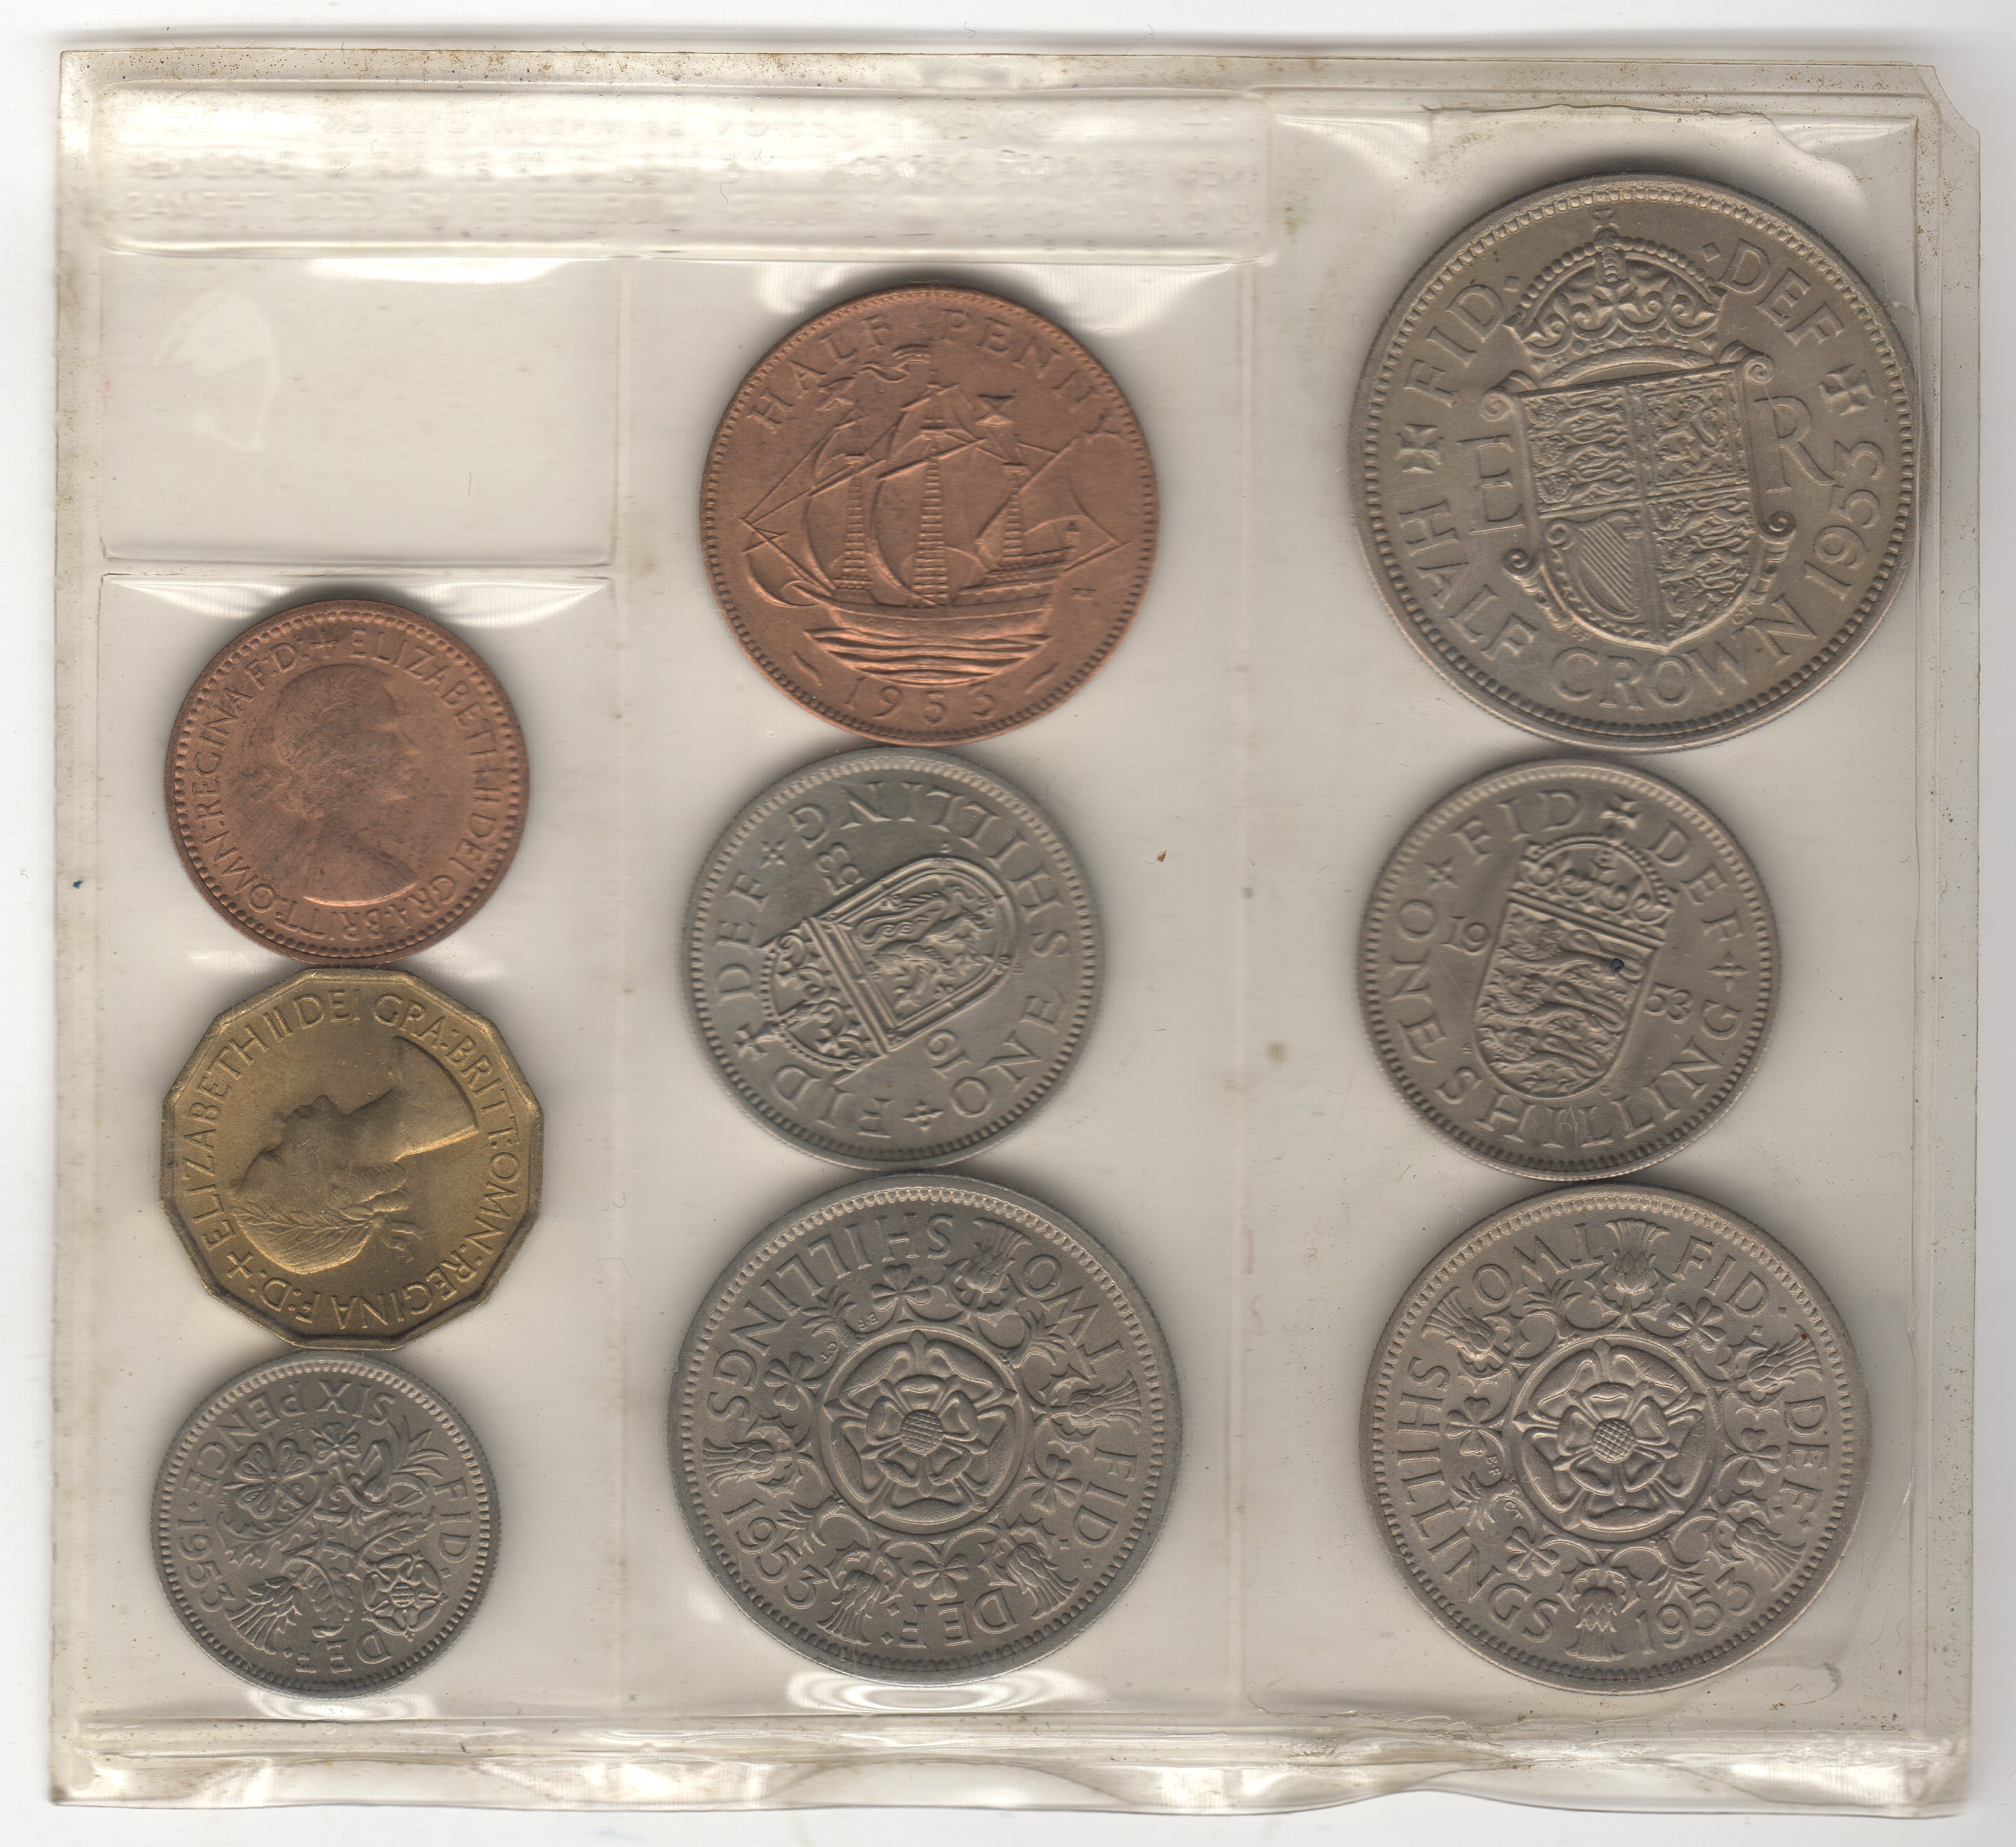 1953 Uk Coin Collection Damaged Pack Pennies2pounds Monete